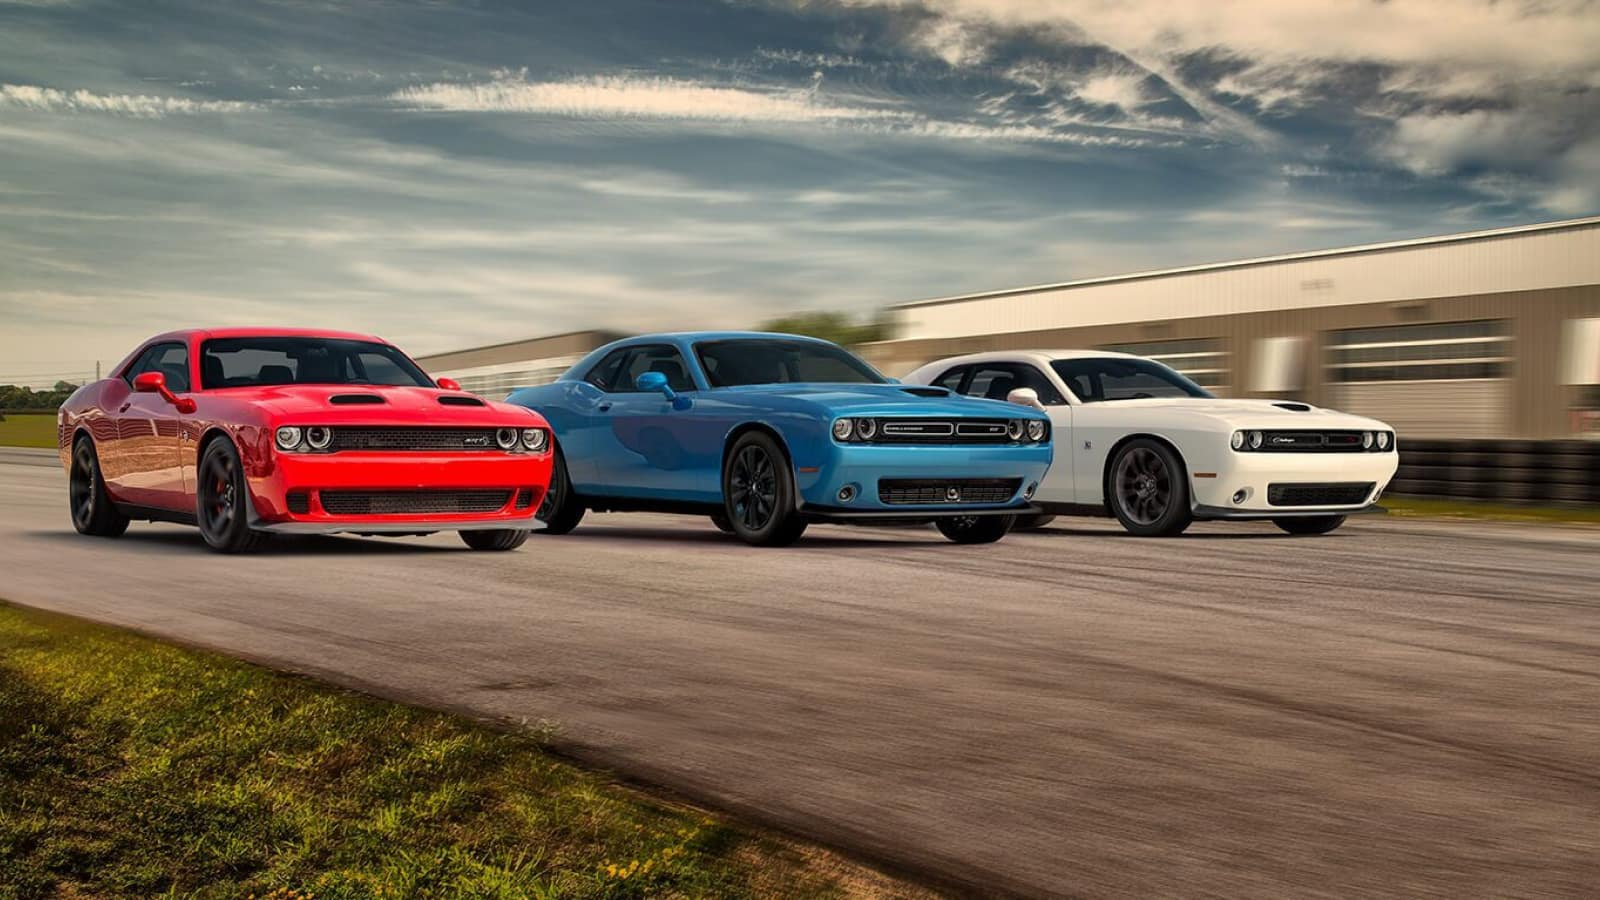 The powerful 2020 Dodge Challenger